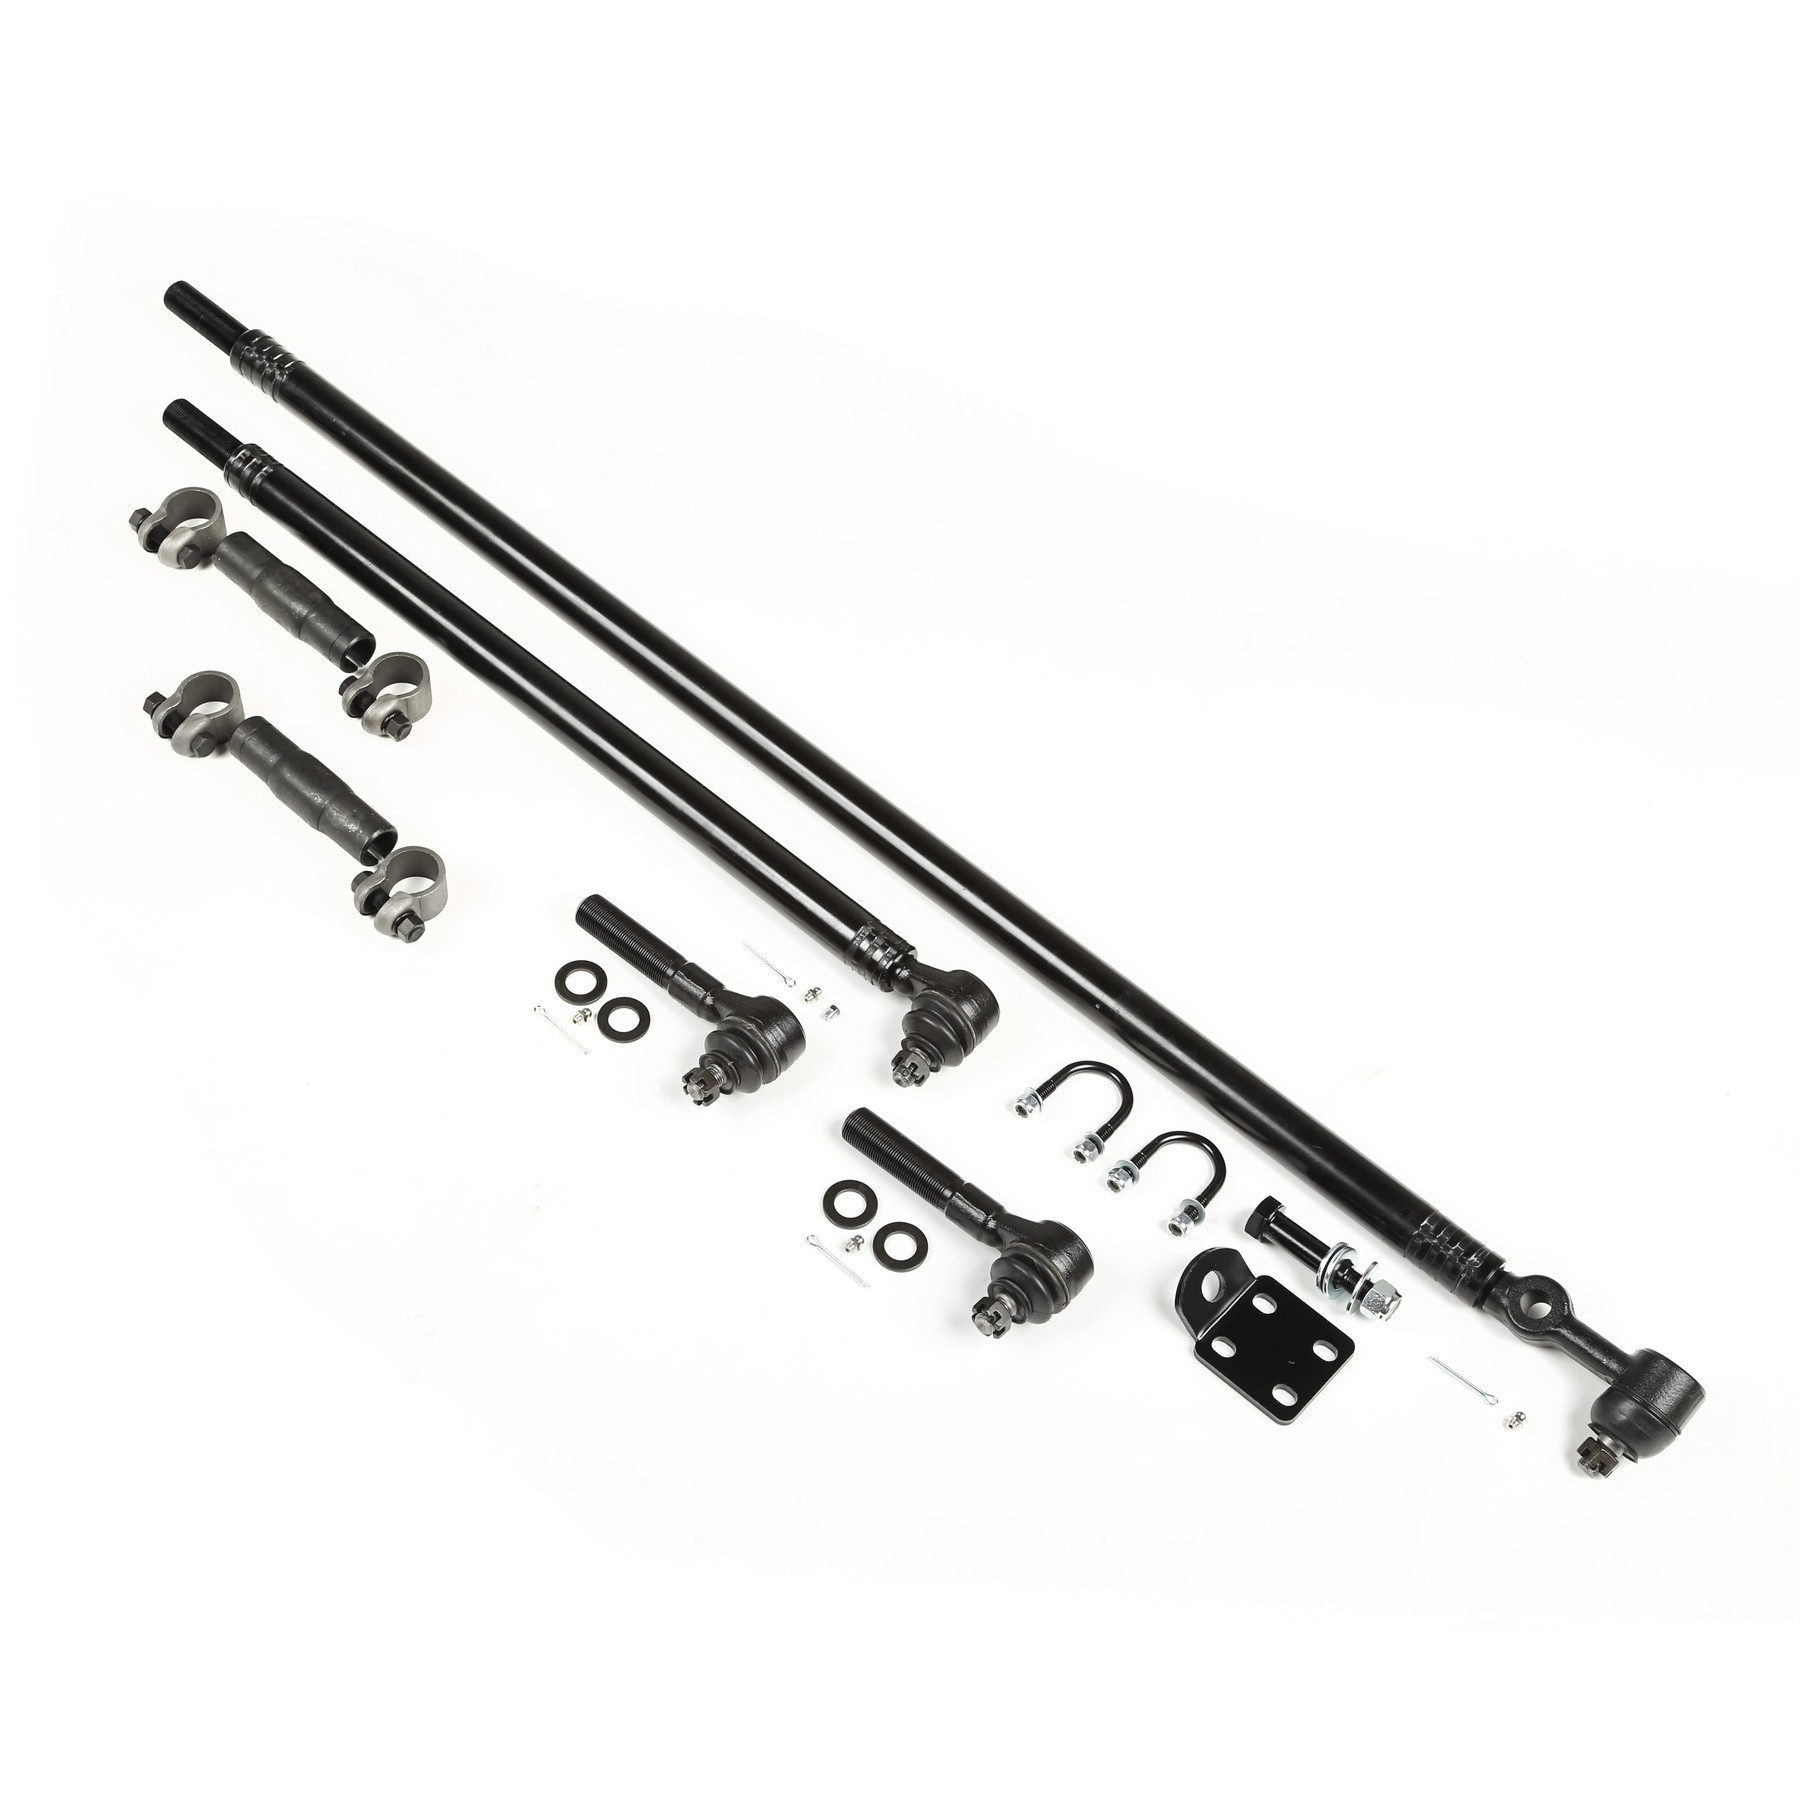 Hd Tie Rod Drag Link Kit Full Linkage 87 95 Wrangler